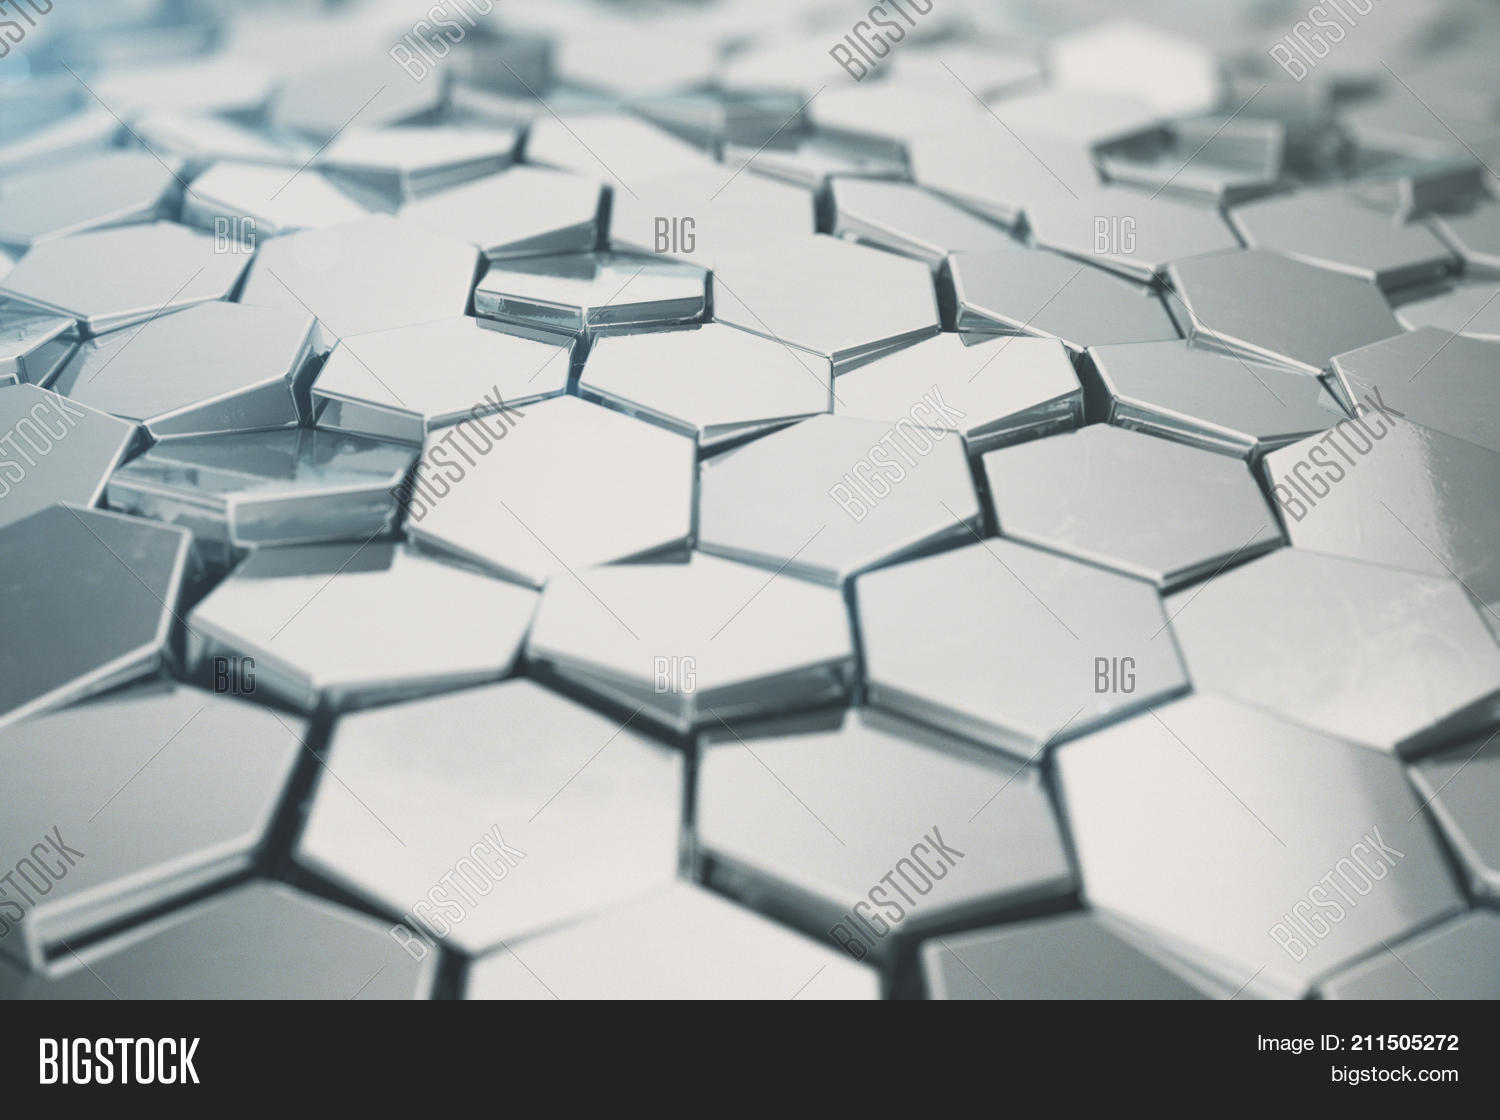 Silver Abstract Image & Photo (Free Trial) | Bigstock